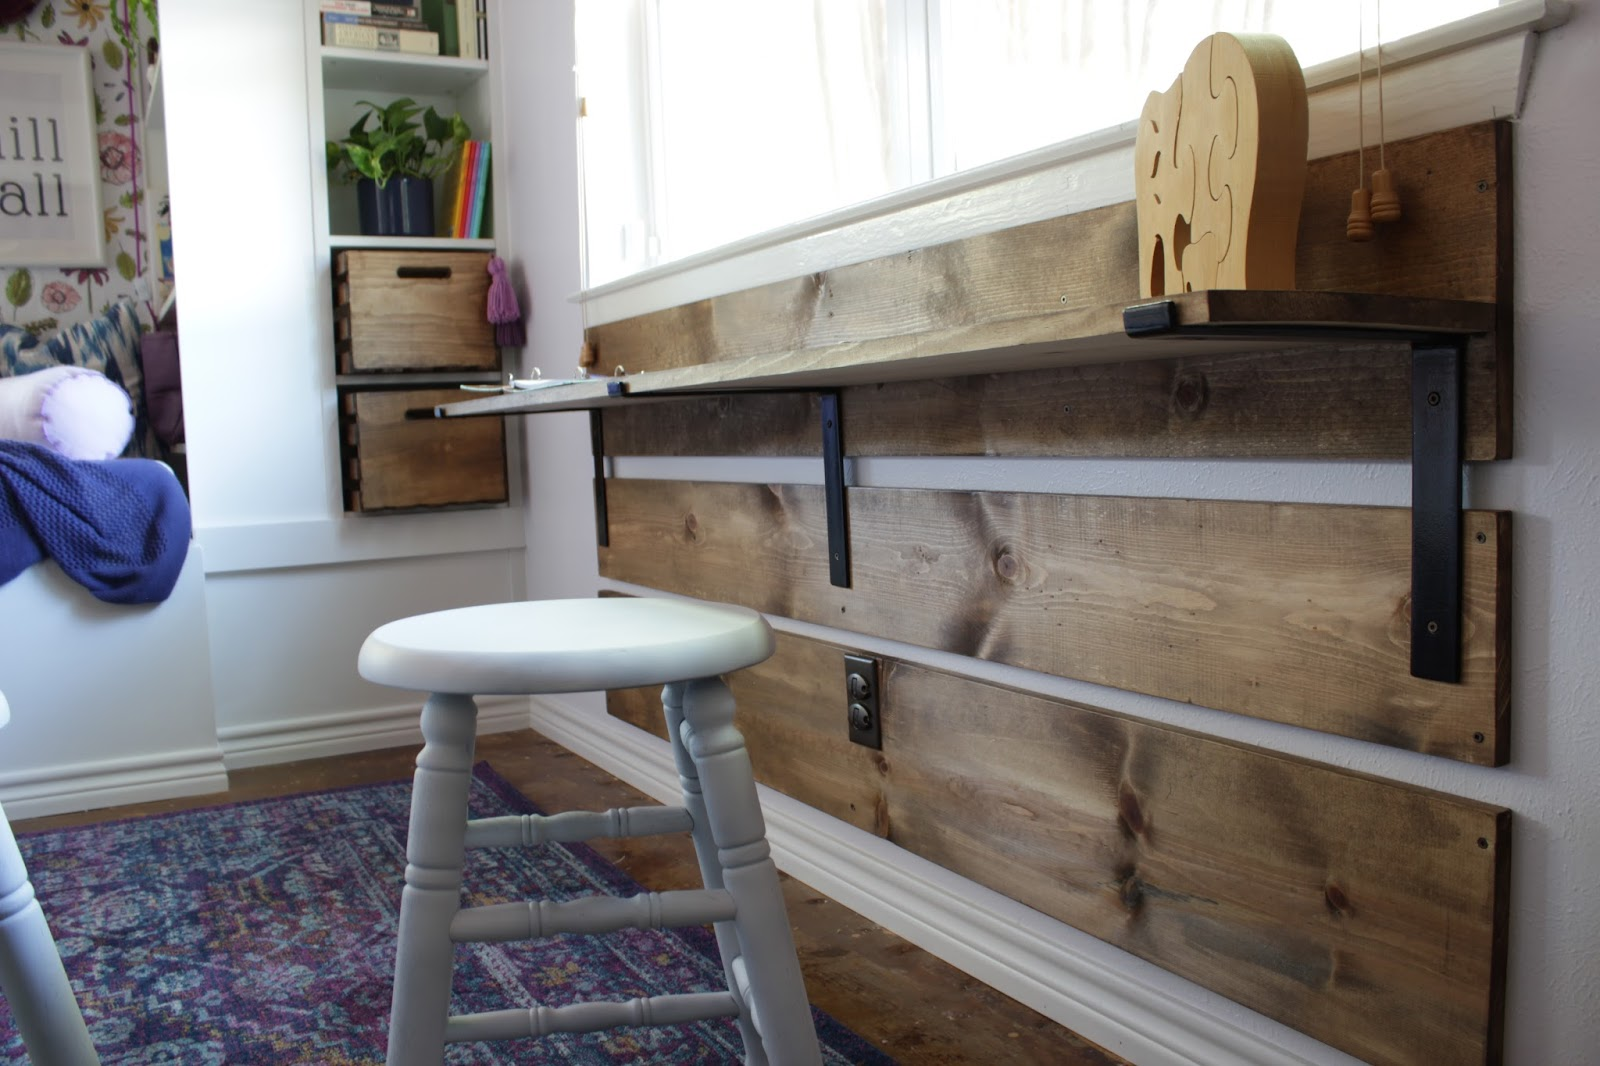 House Homemade DIY Kids Desk With Shelf Brackets